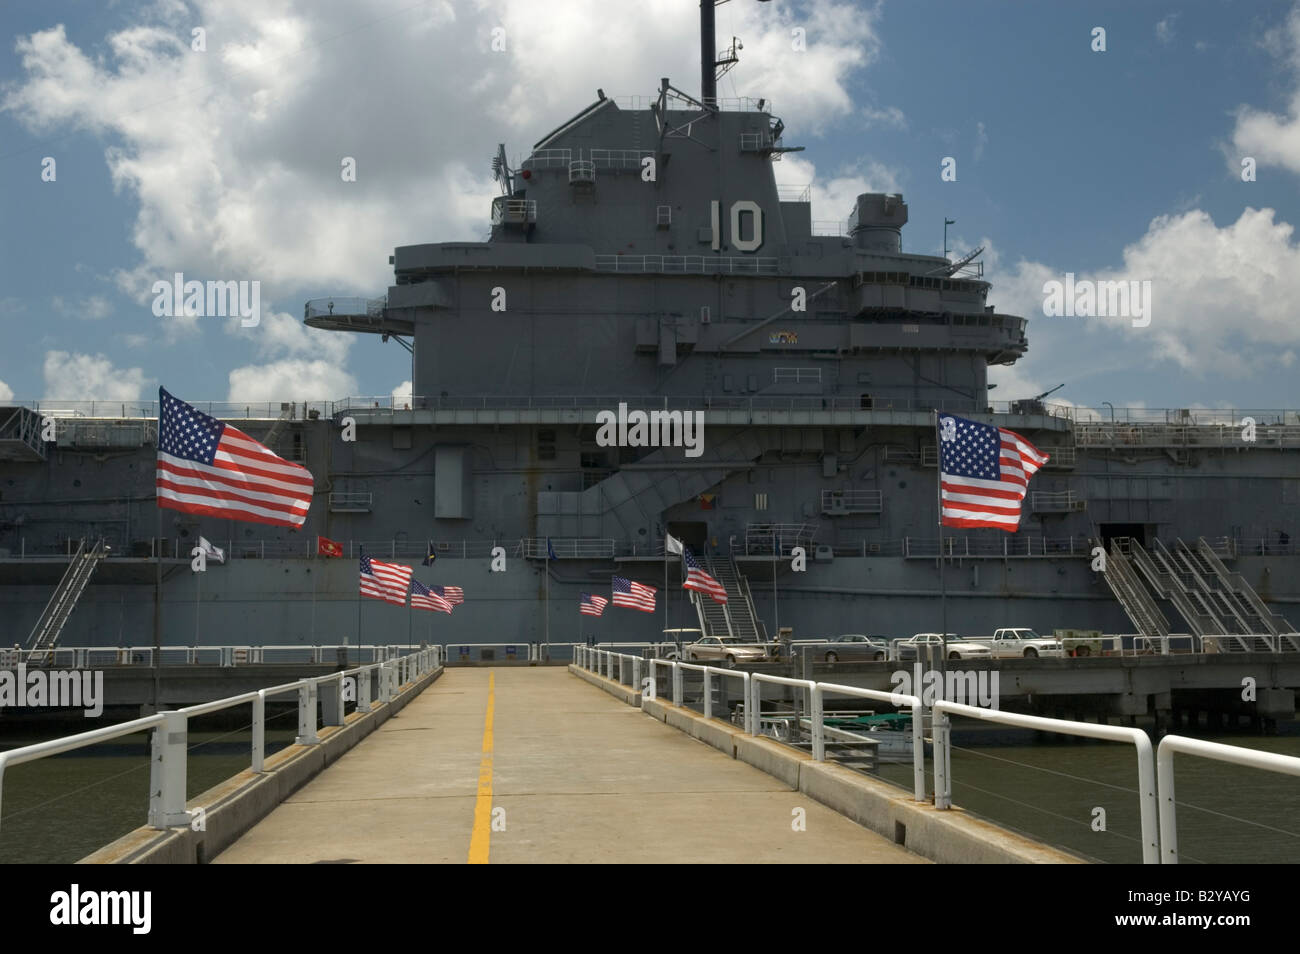 essex class aircraft carrier stock photos  u0026 essex class aircraft carrier stock images